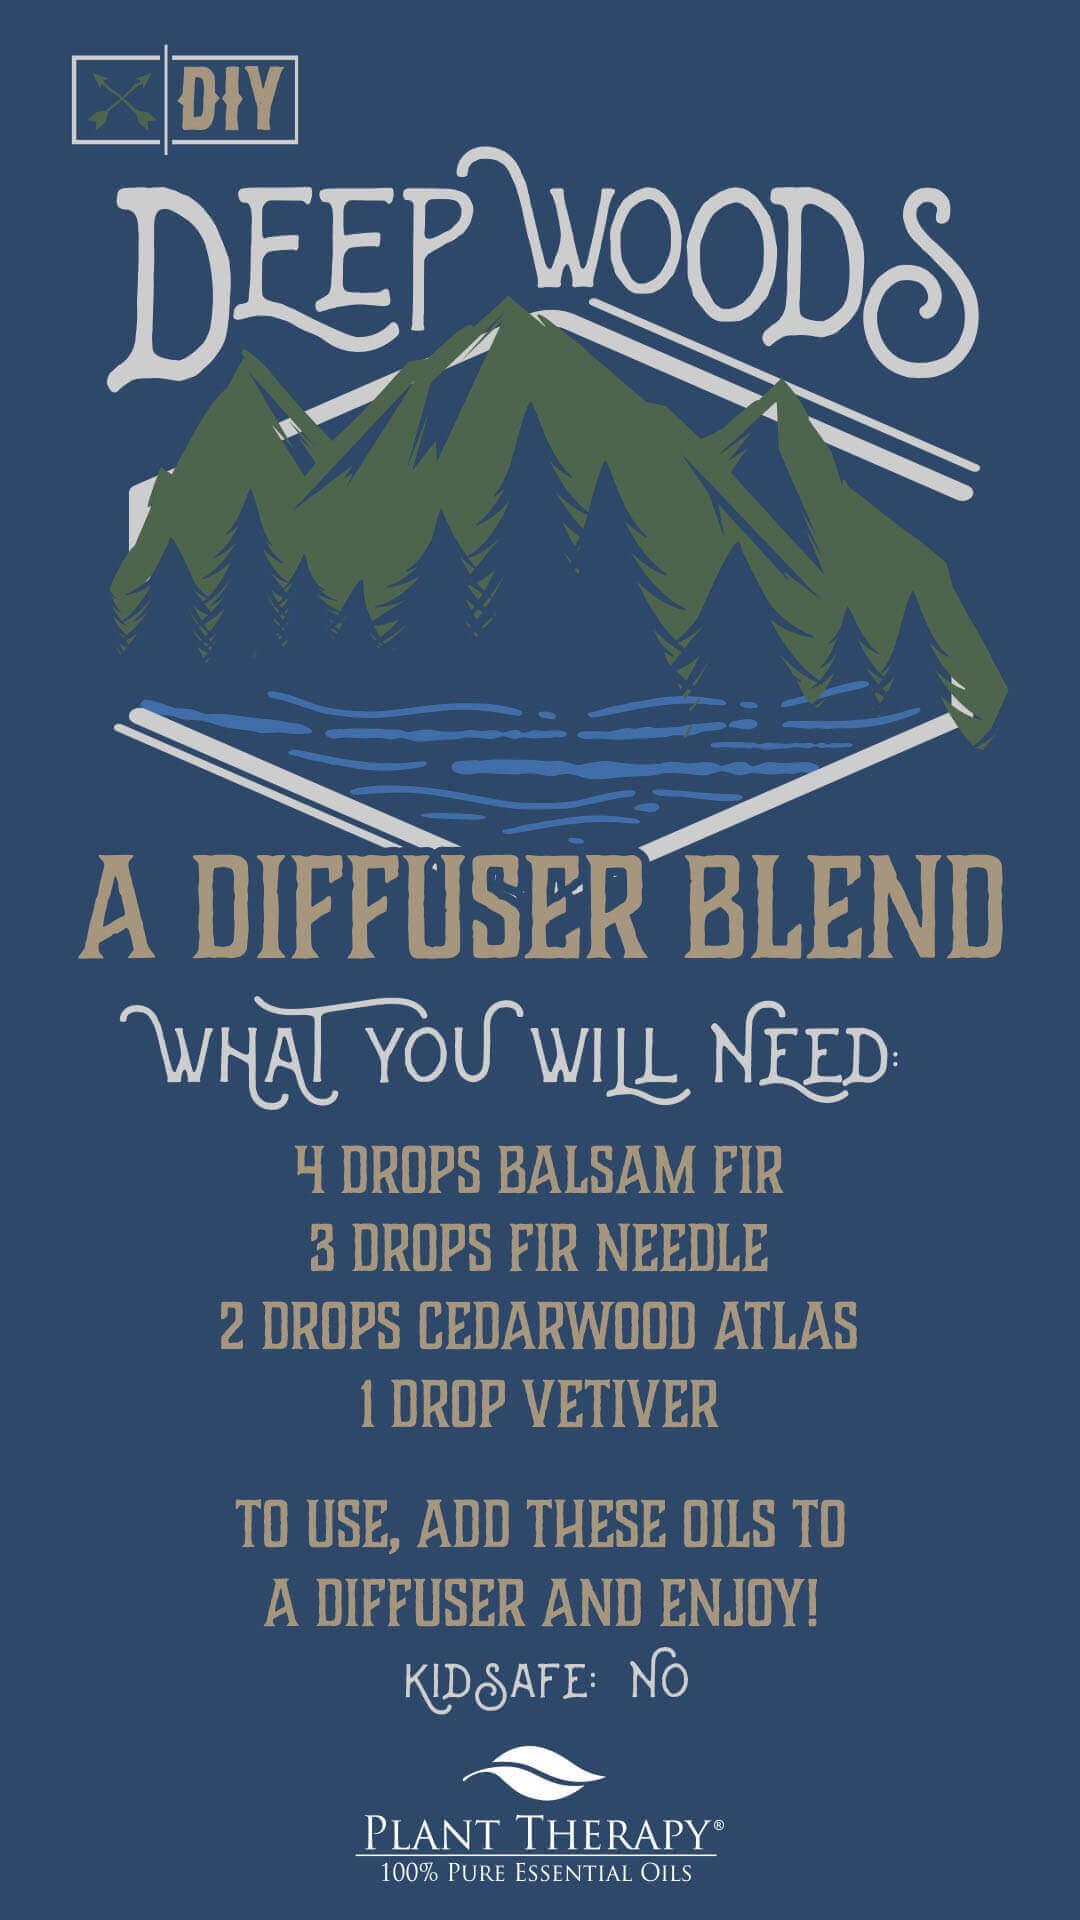 DIY Father's Day Diffuser Blend for the Nerdy Dad